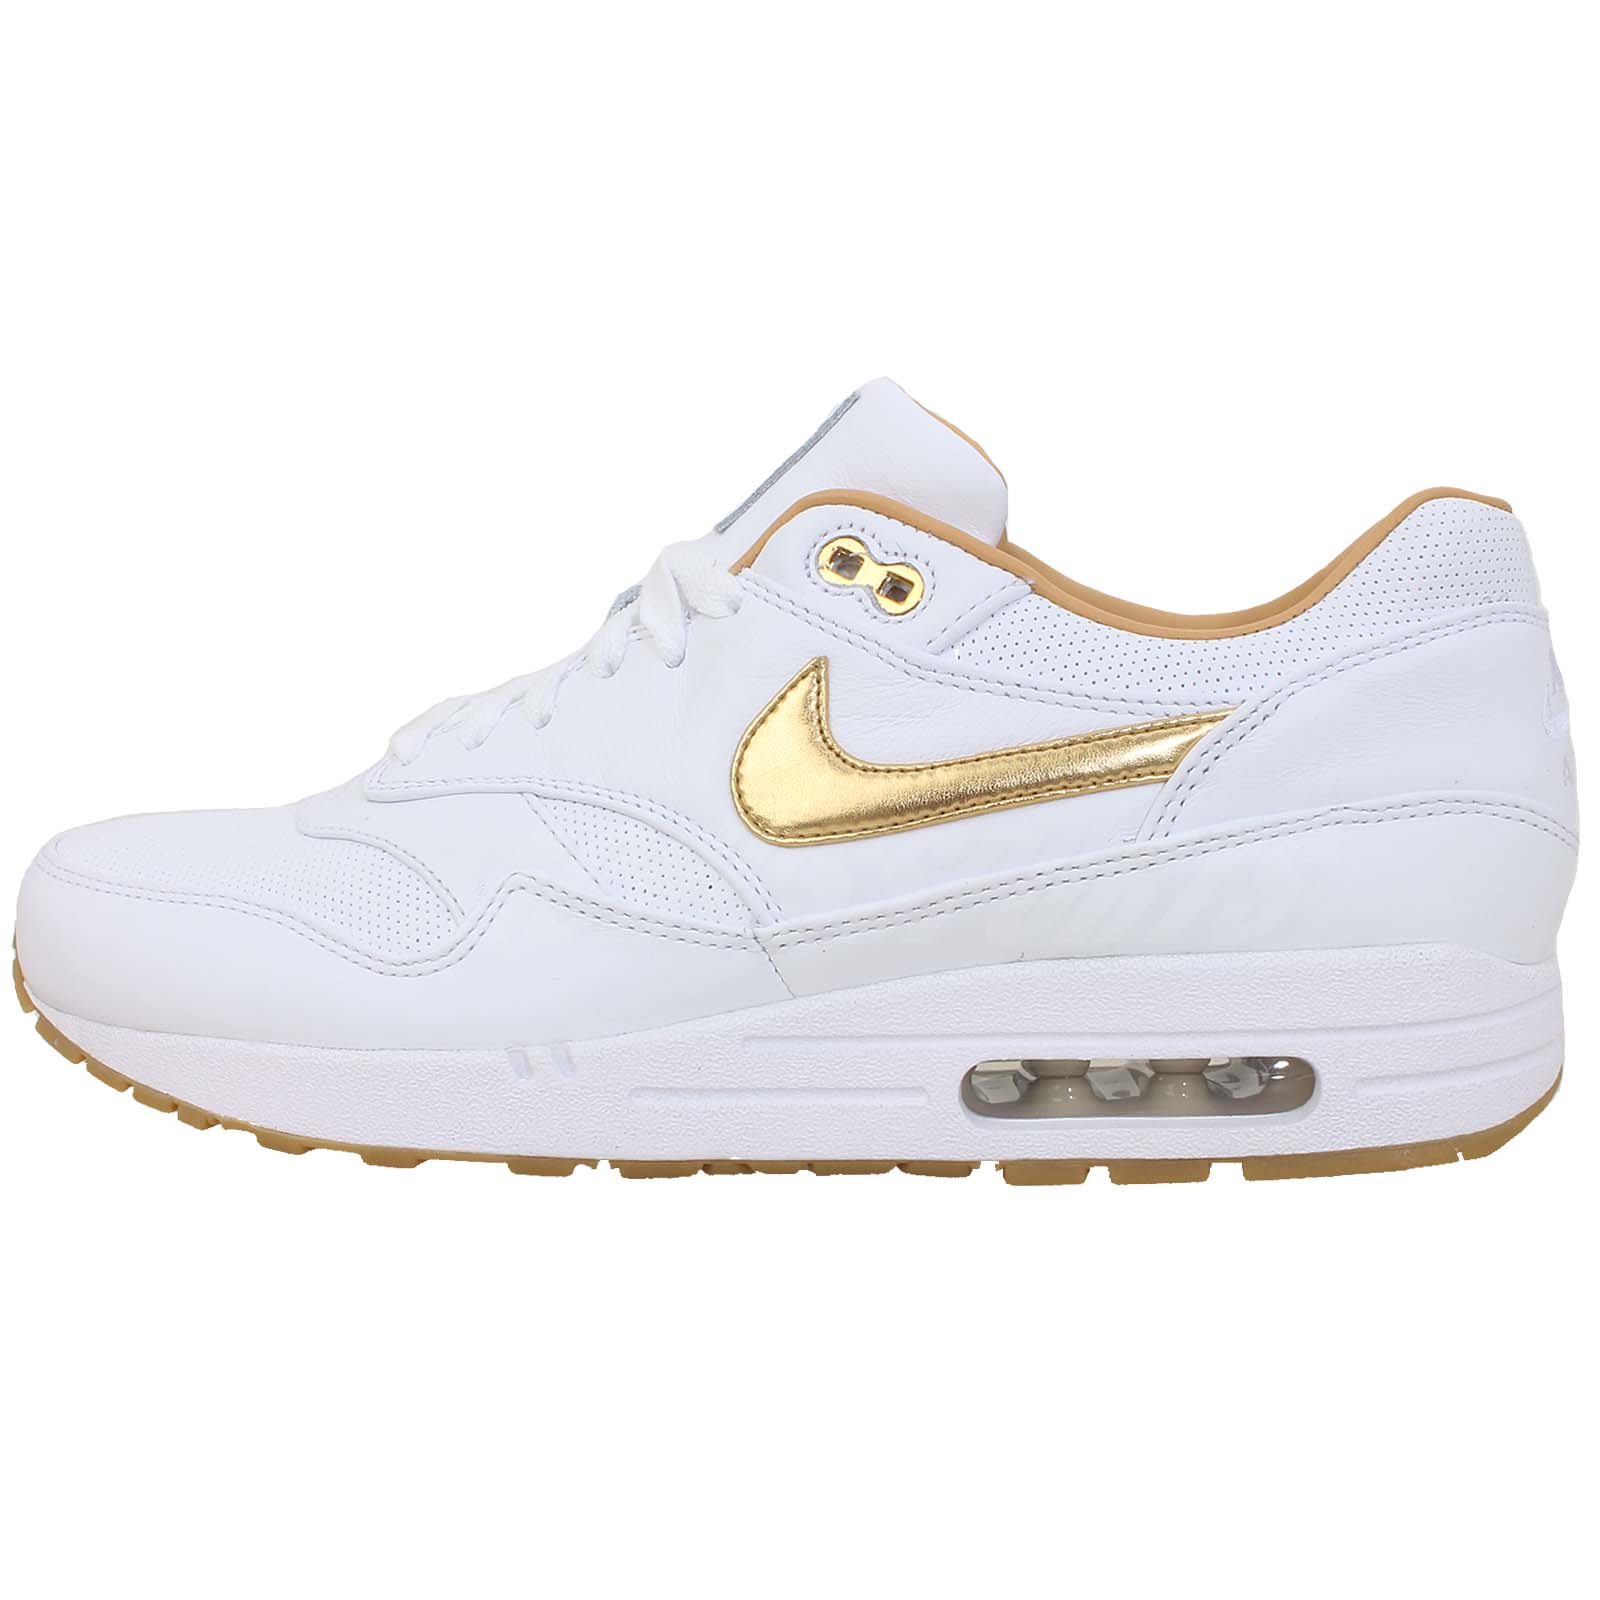 nike air max 90 gold and white